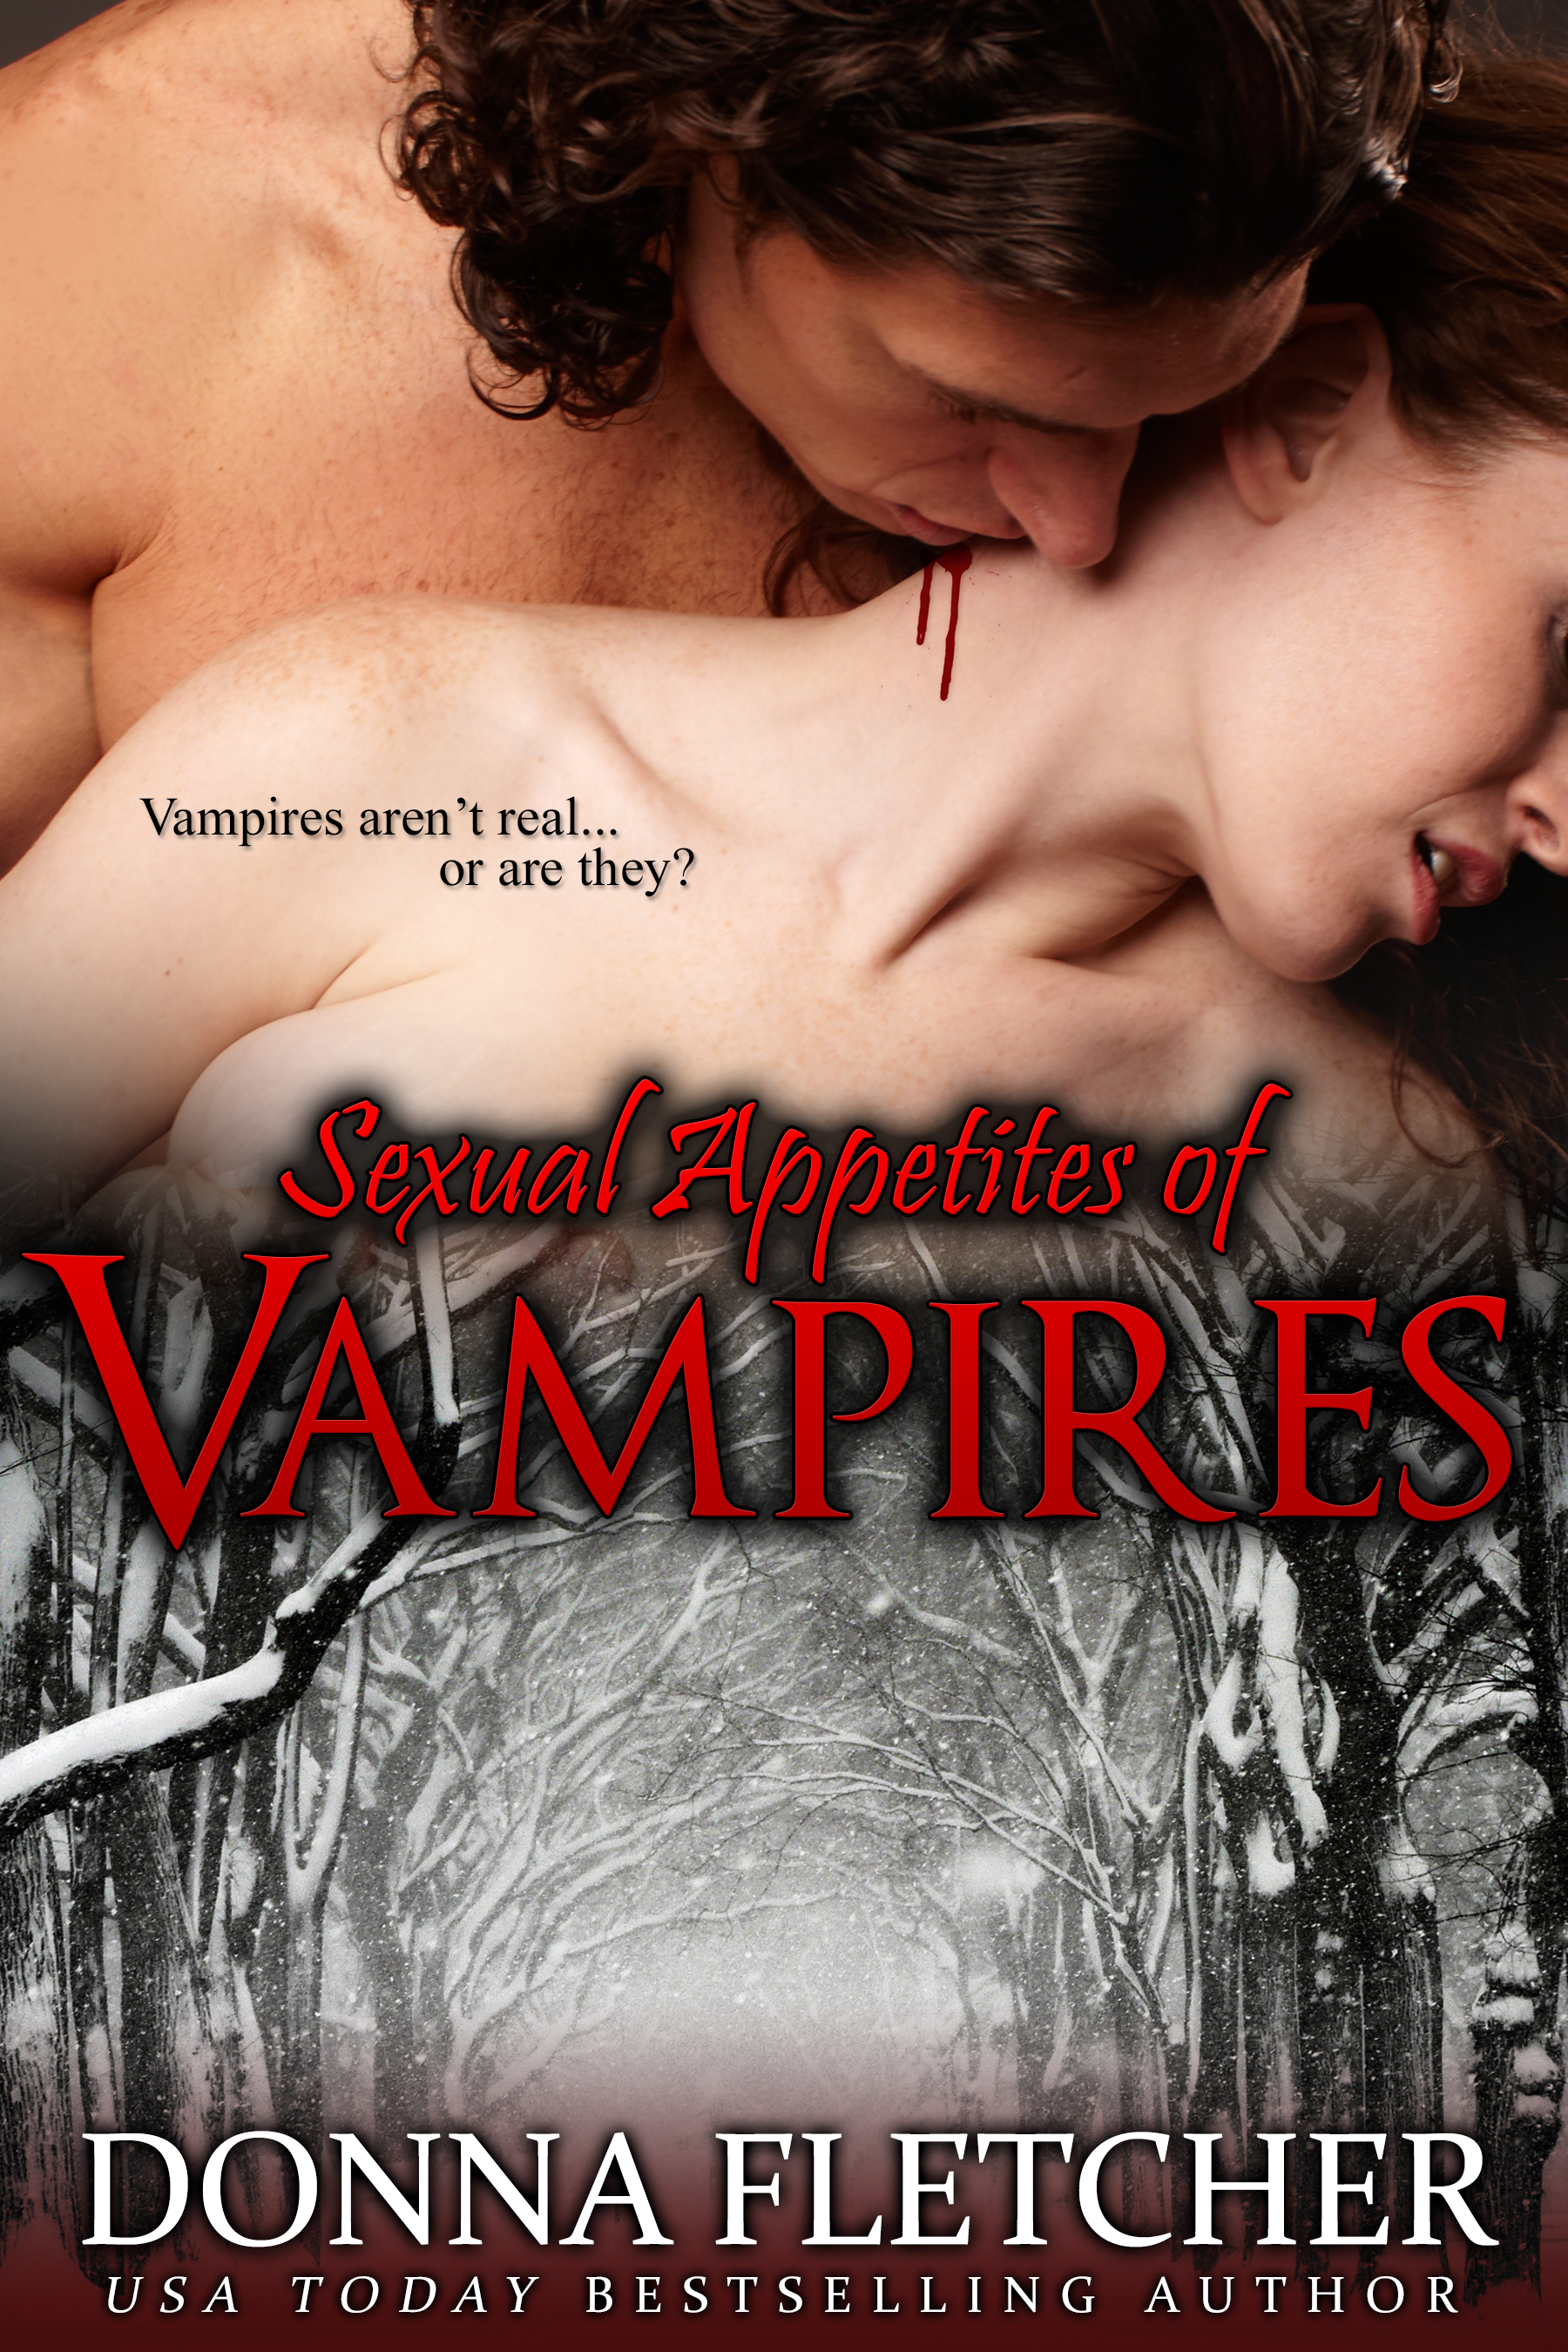 Donna Fletcher - Sexual Appetites of Vampires